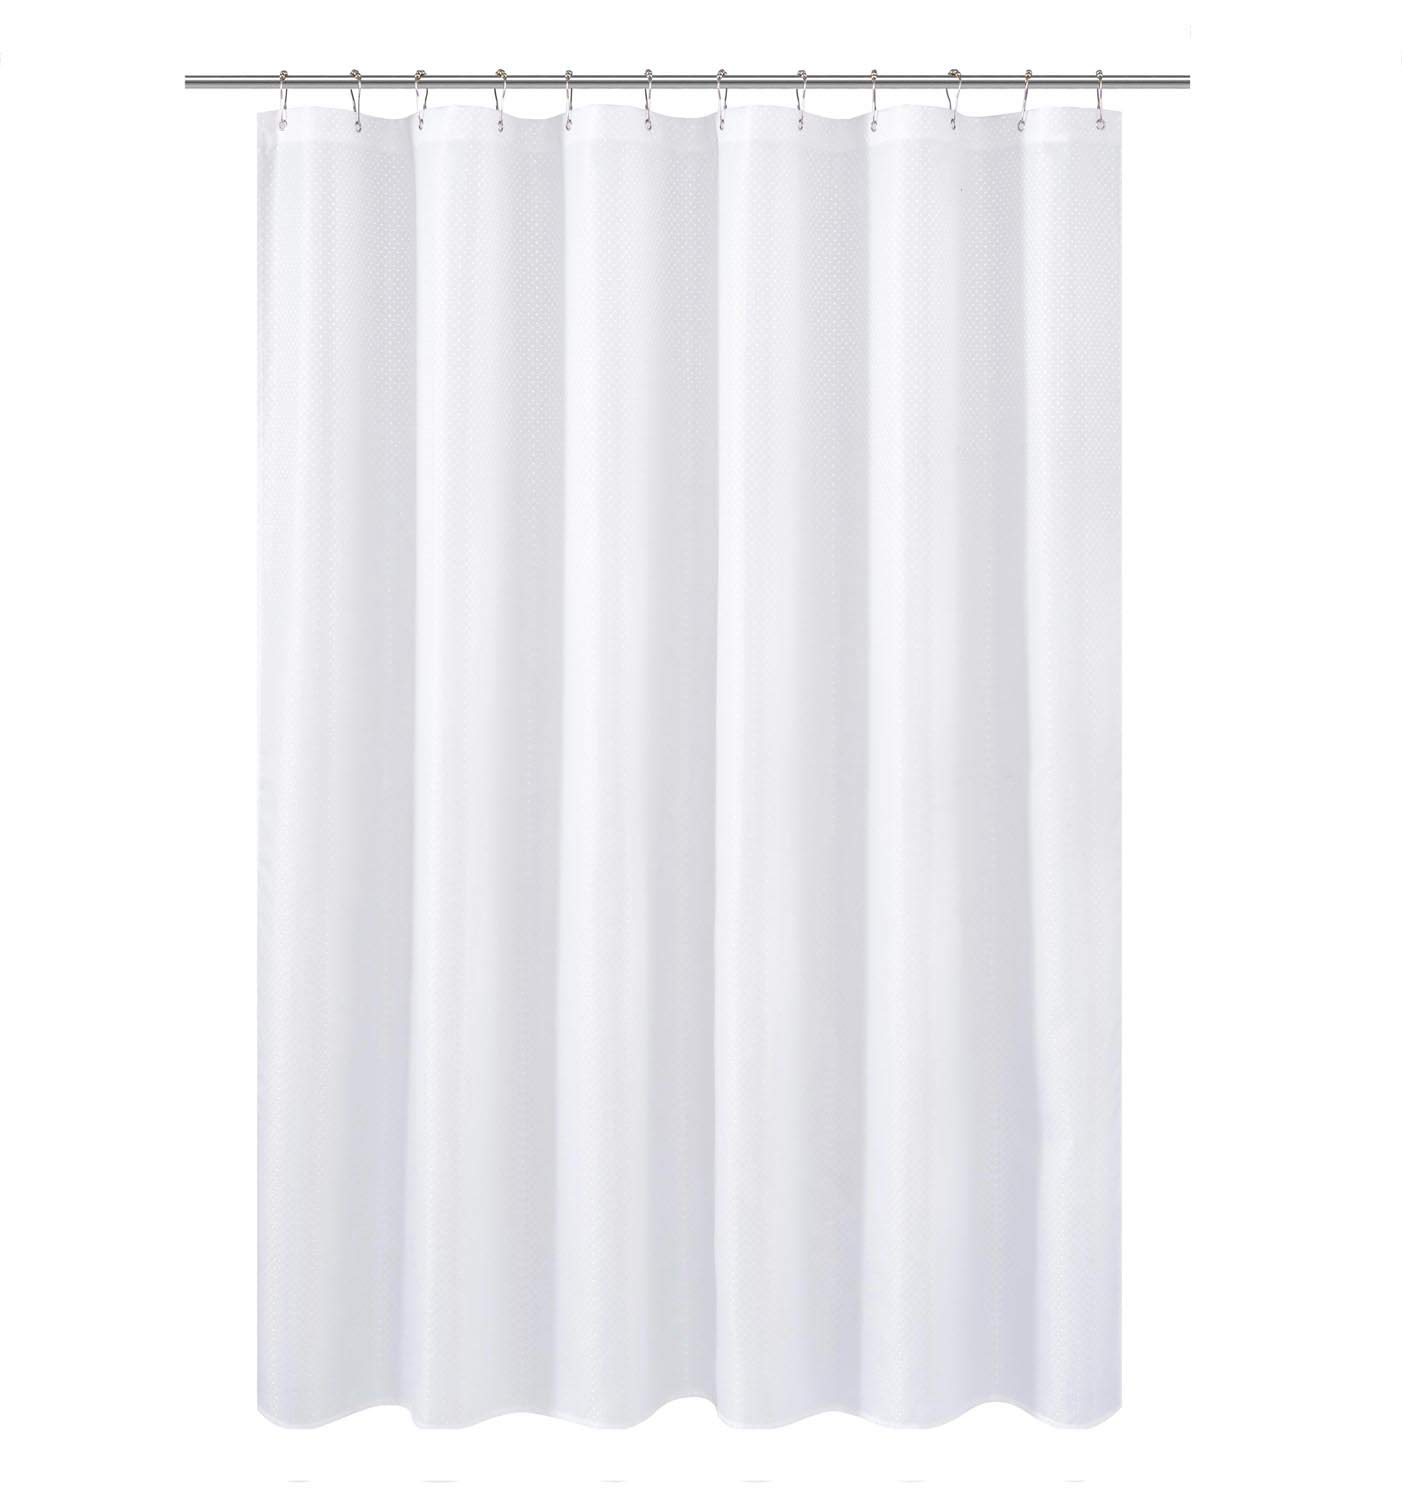 N&Y HOME Short Shower Curtain or Liner Fabric 66 inches Shorter Length, Hotel Quality, Washable, Water Repellent, Diamond Patterned White Bathroom Curtains with Grommets